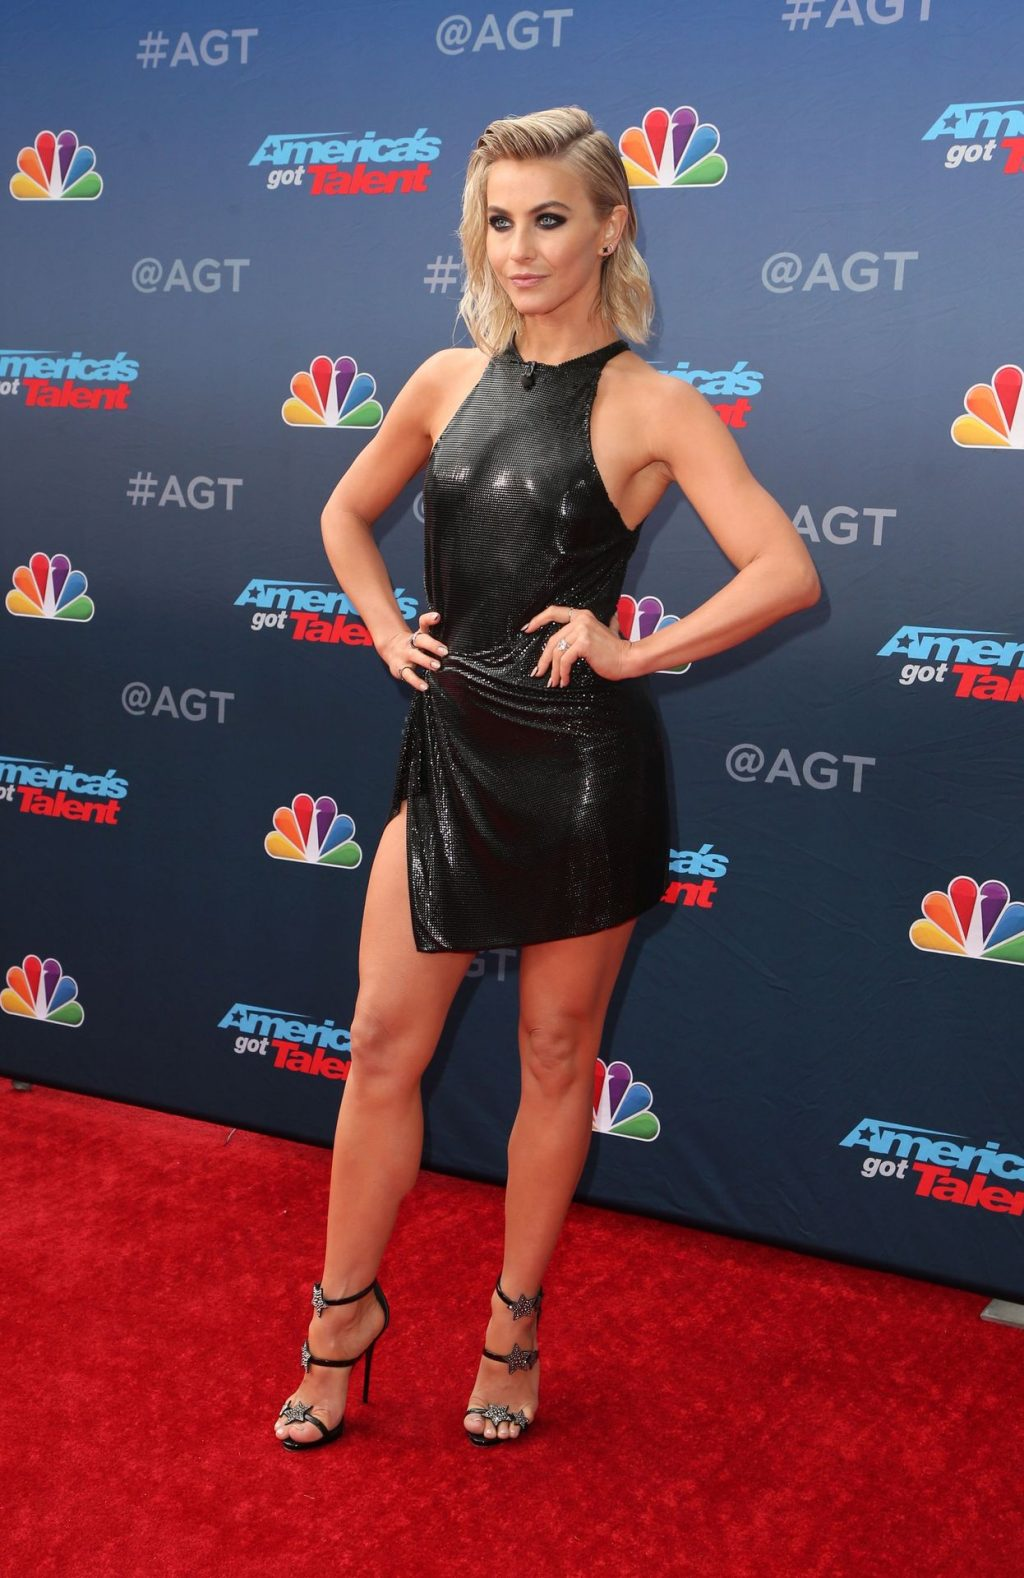 Julianne Hough Braless - #TheFappening